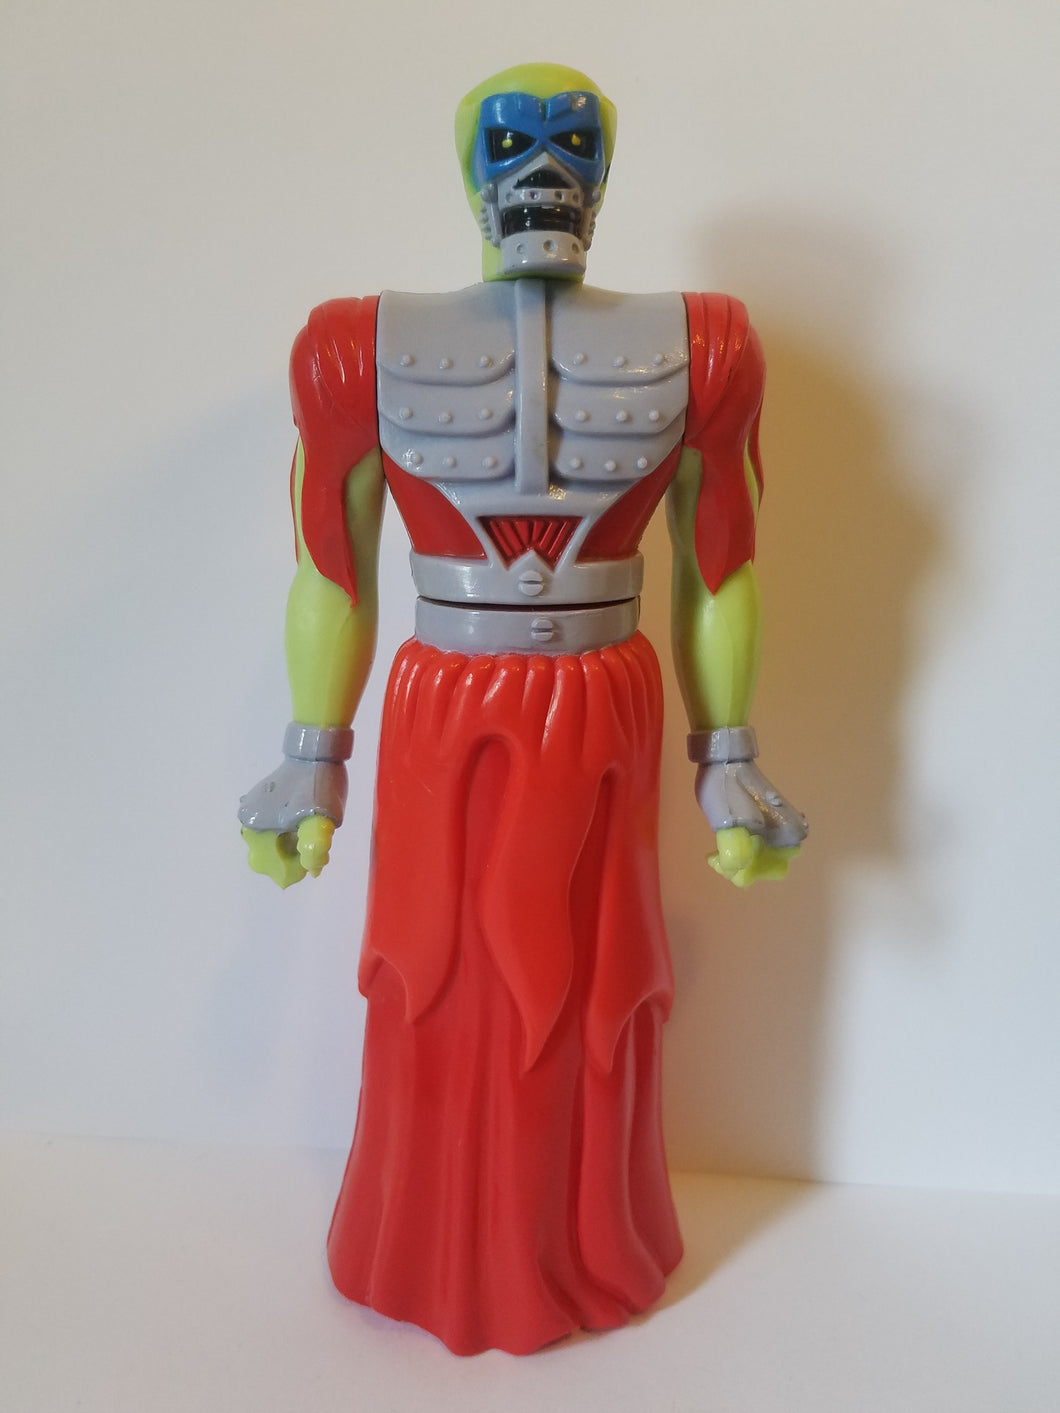 1986 Filmations GhostBusters Prime Evil Action Figure